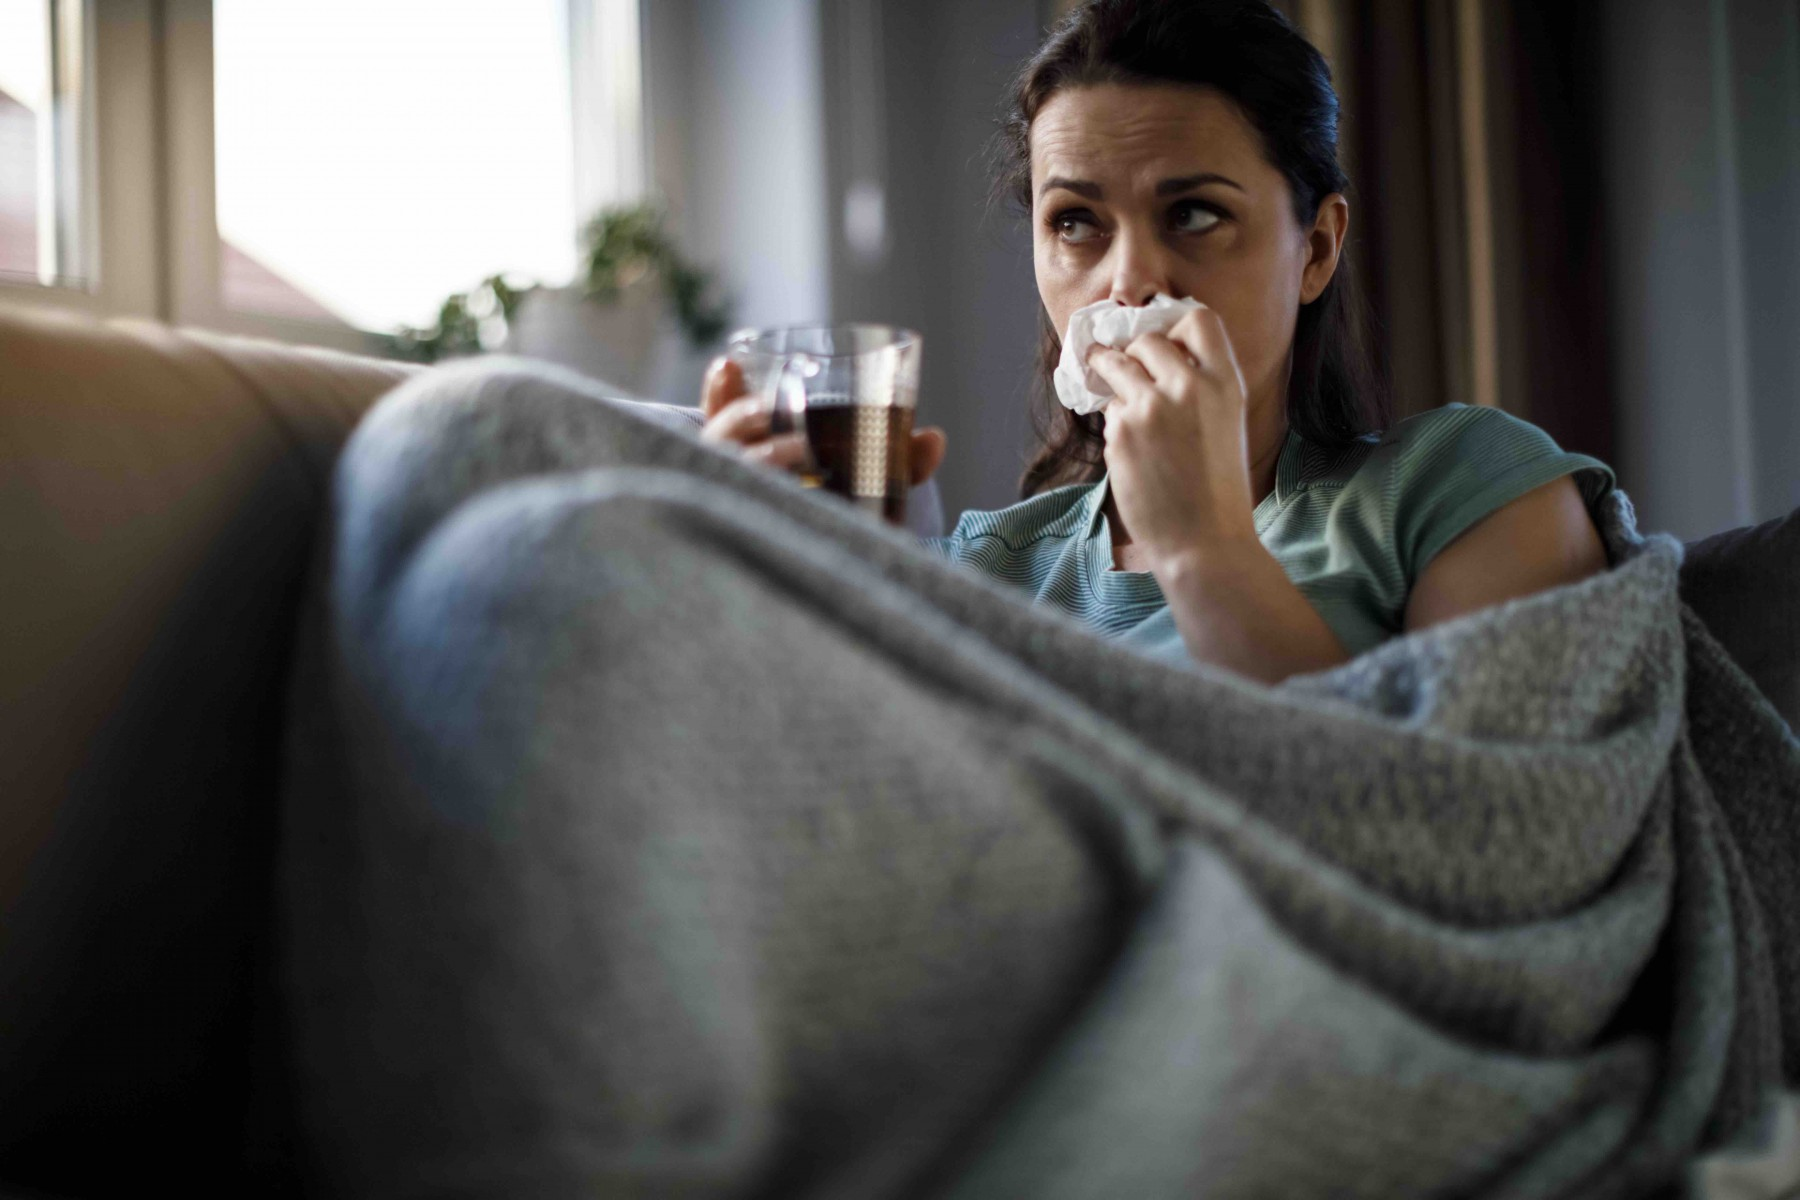 Cedars-Sinai experts say it's critical to remain vigilant about safety measures that can prevent the spread of the flu and COVID-19. Photo by Getty Images.